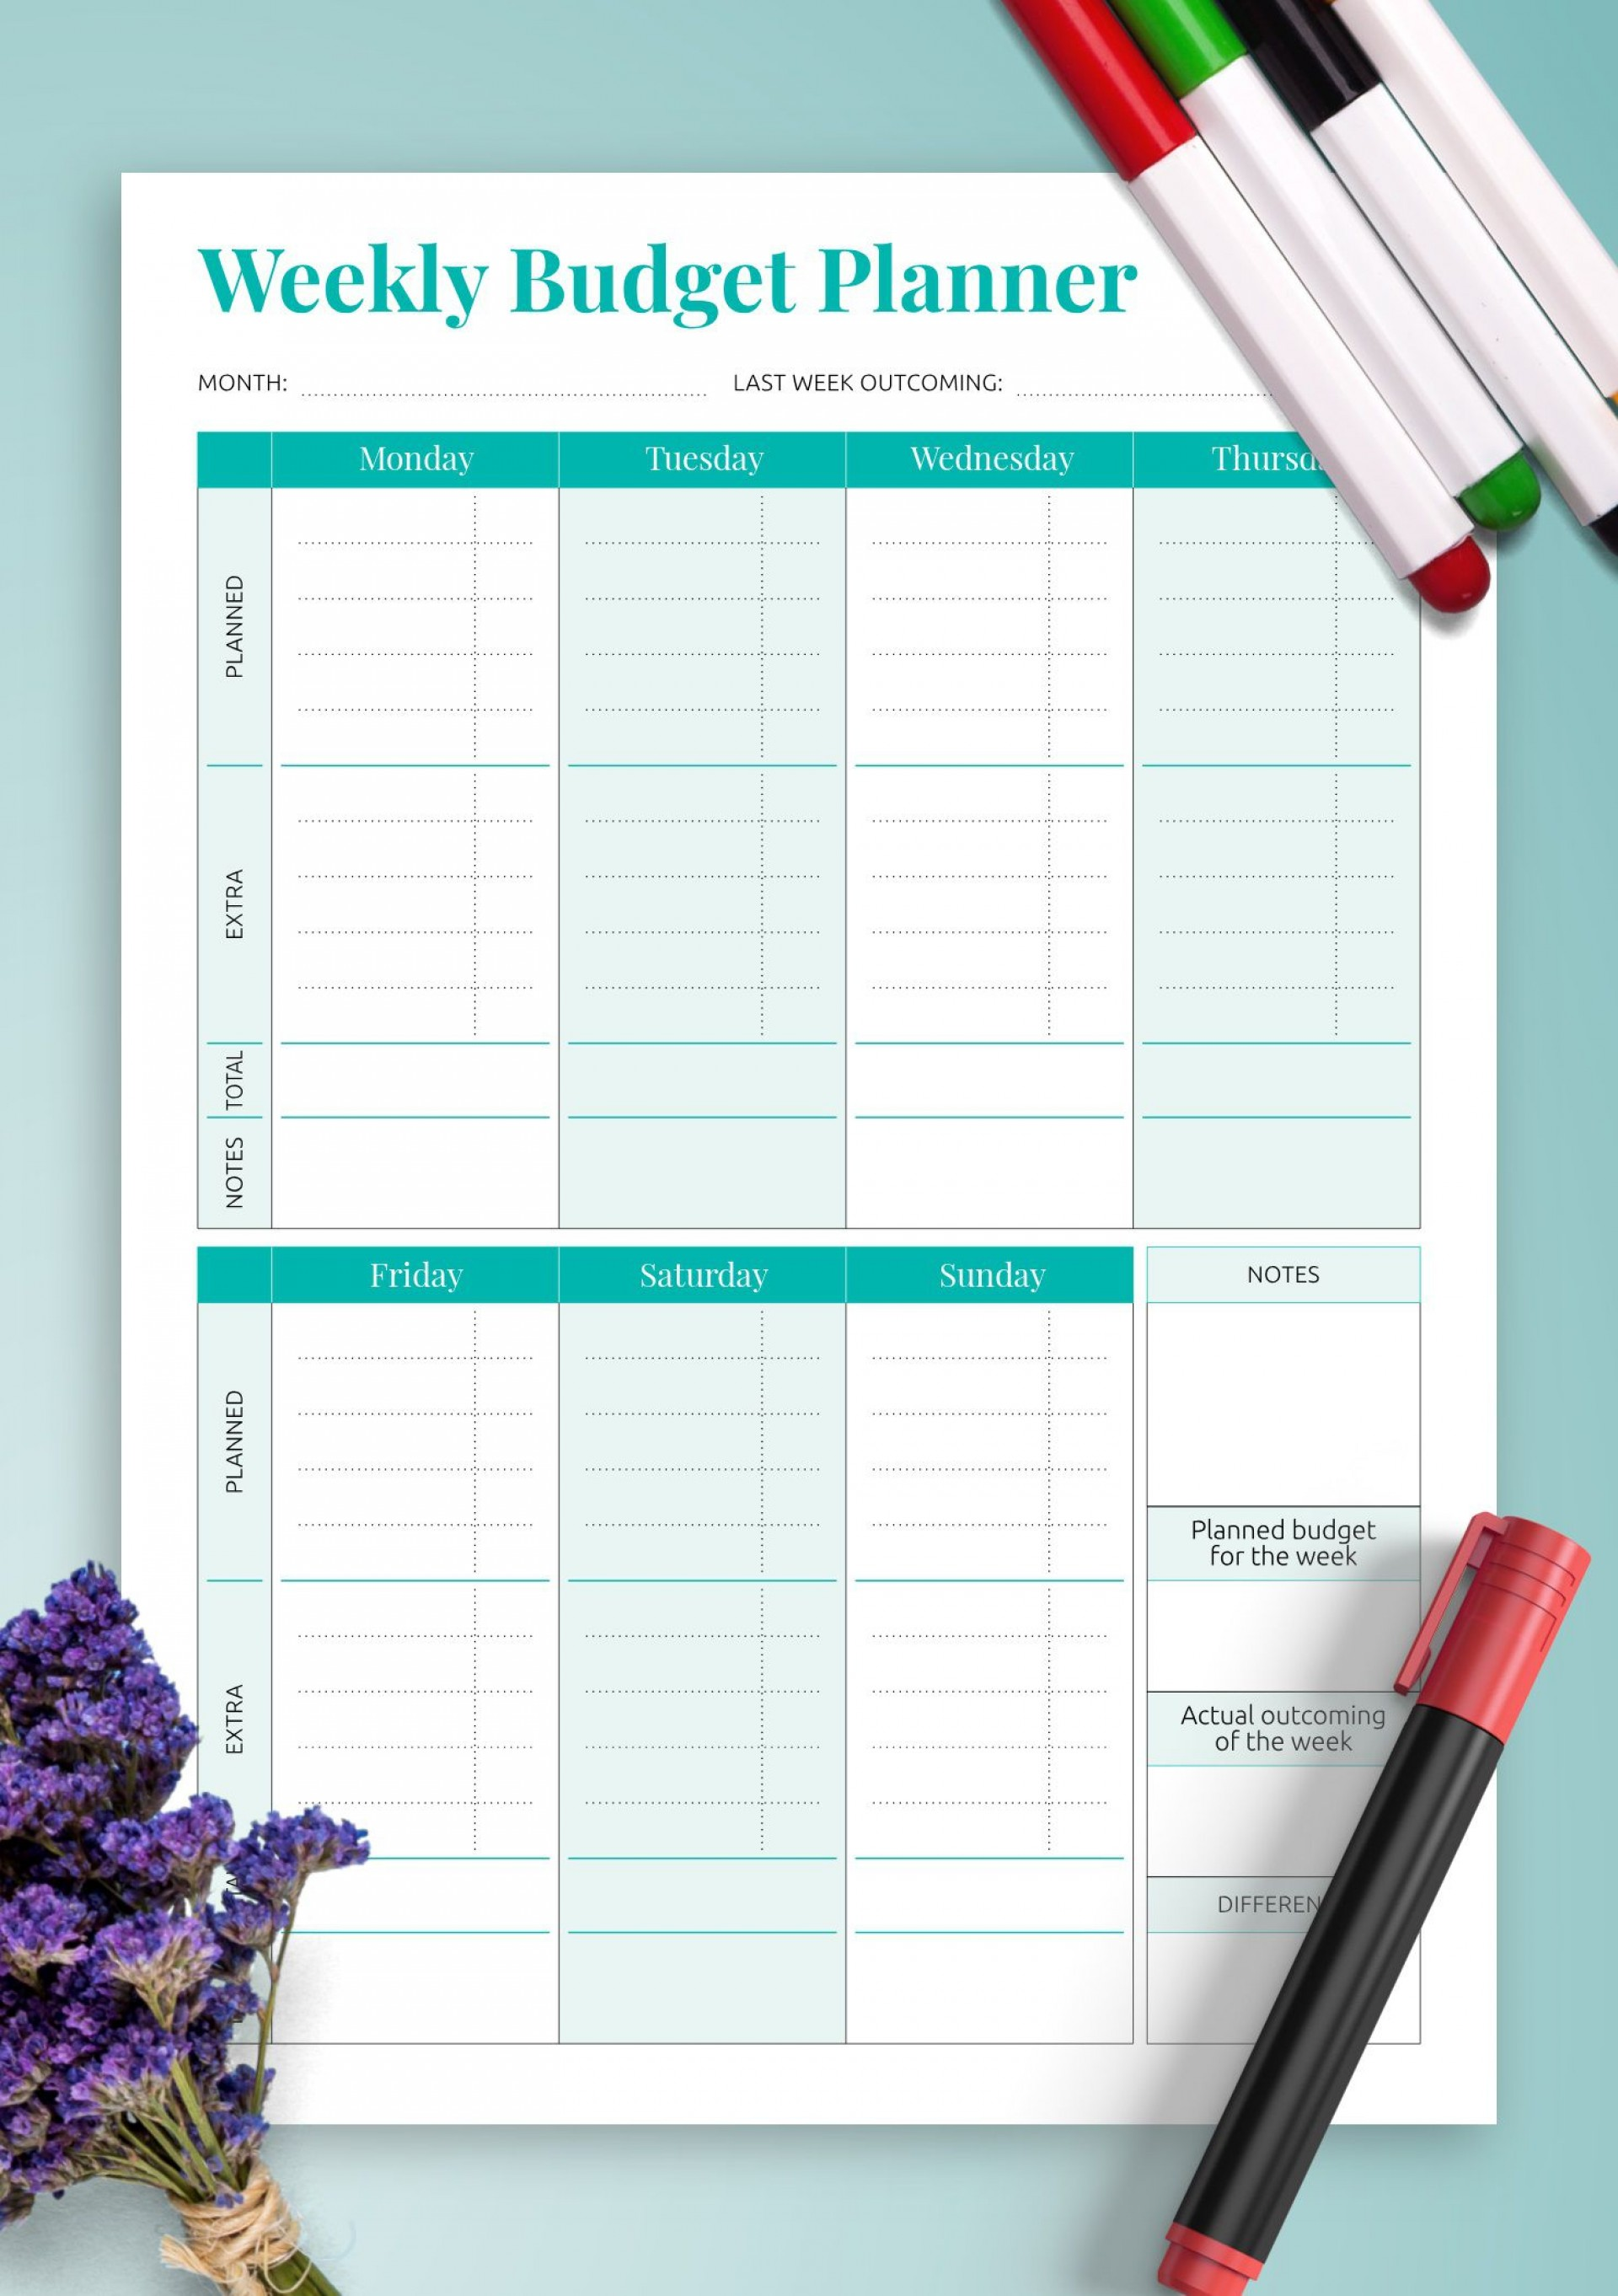 008 Surprising Simple Weekly Budget Template Picture  Planner Personal Printable1920